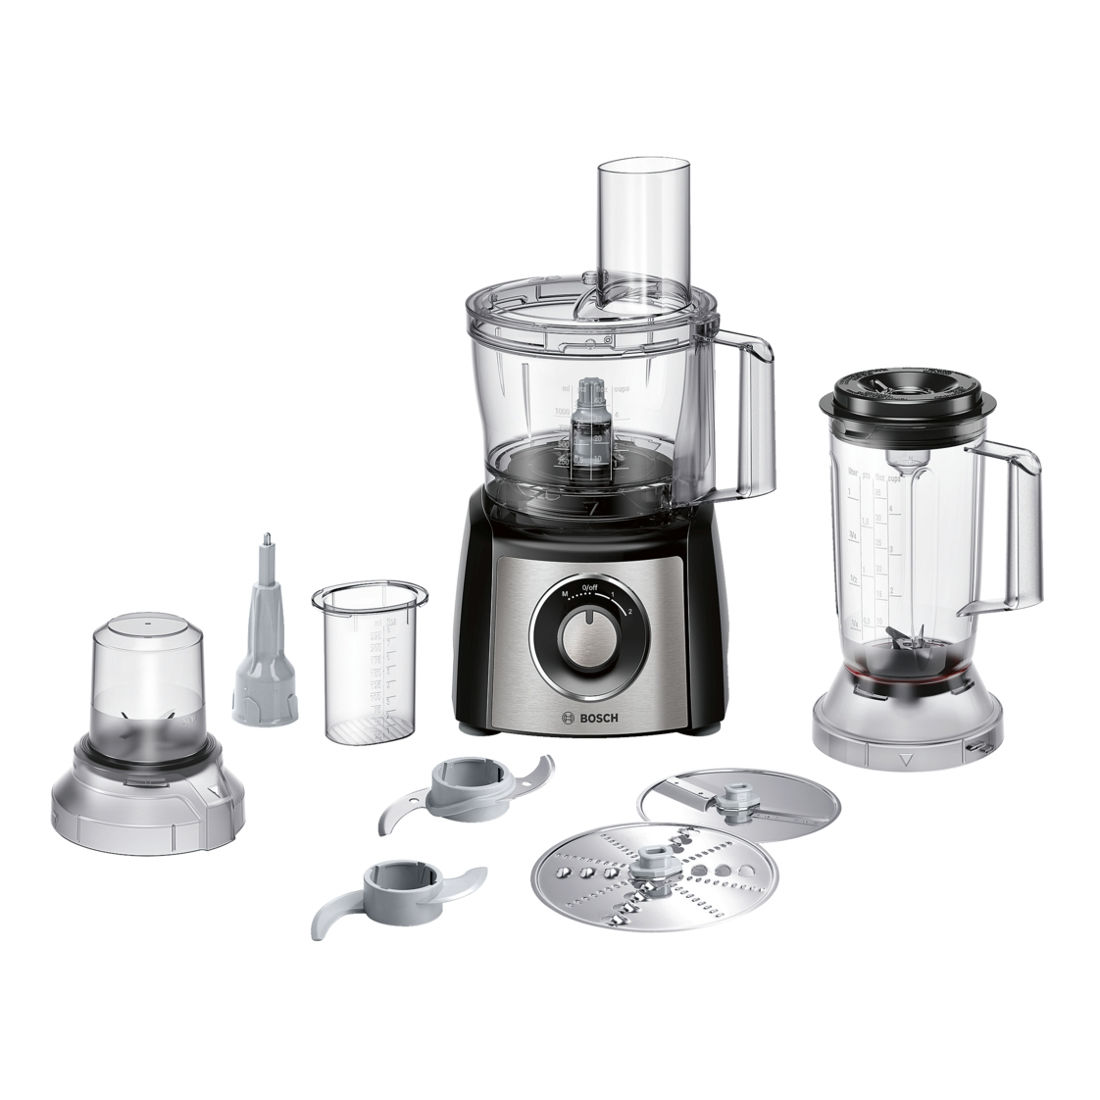 Lidl Küchenmaschine Bosch Bosch Mcm3501mgb Food Processor With 800w Motor And